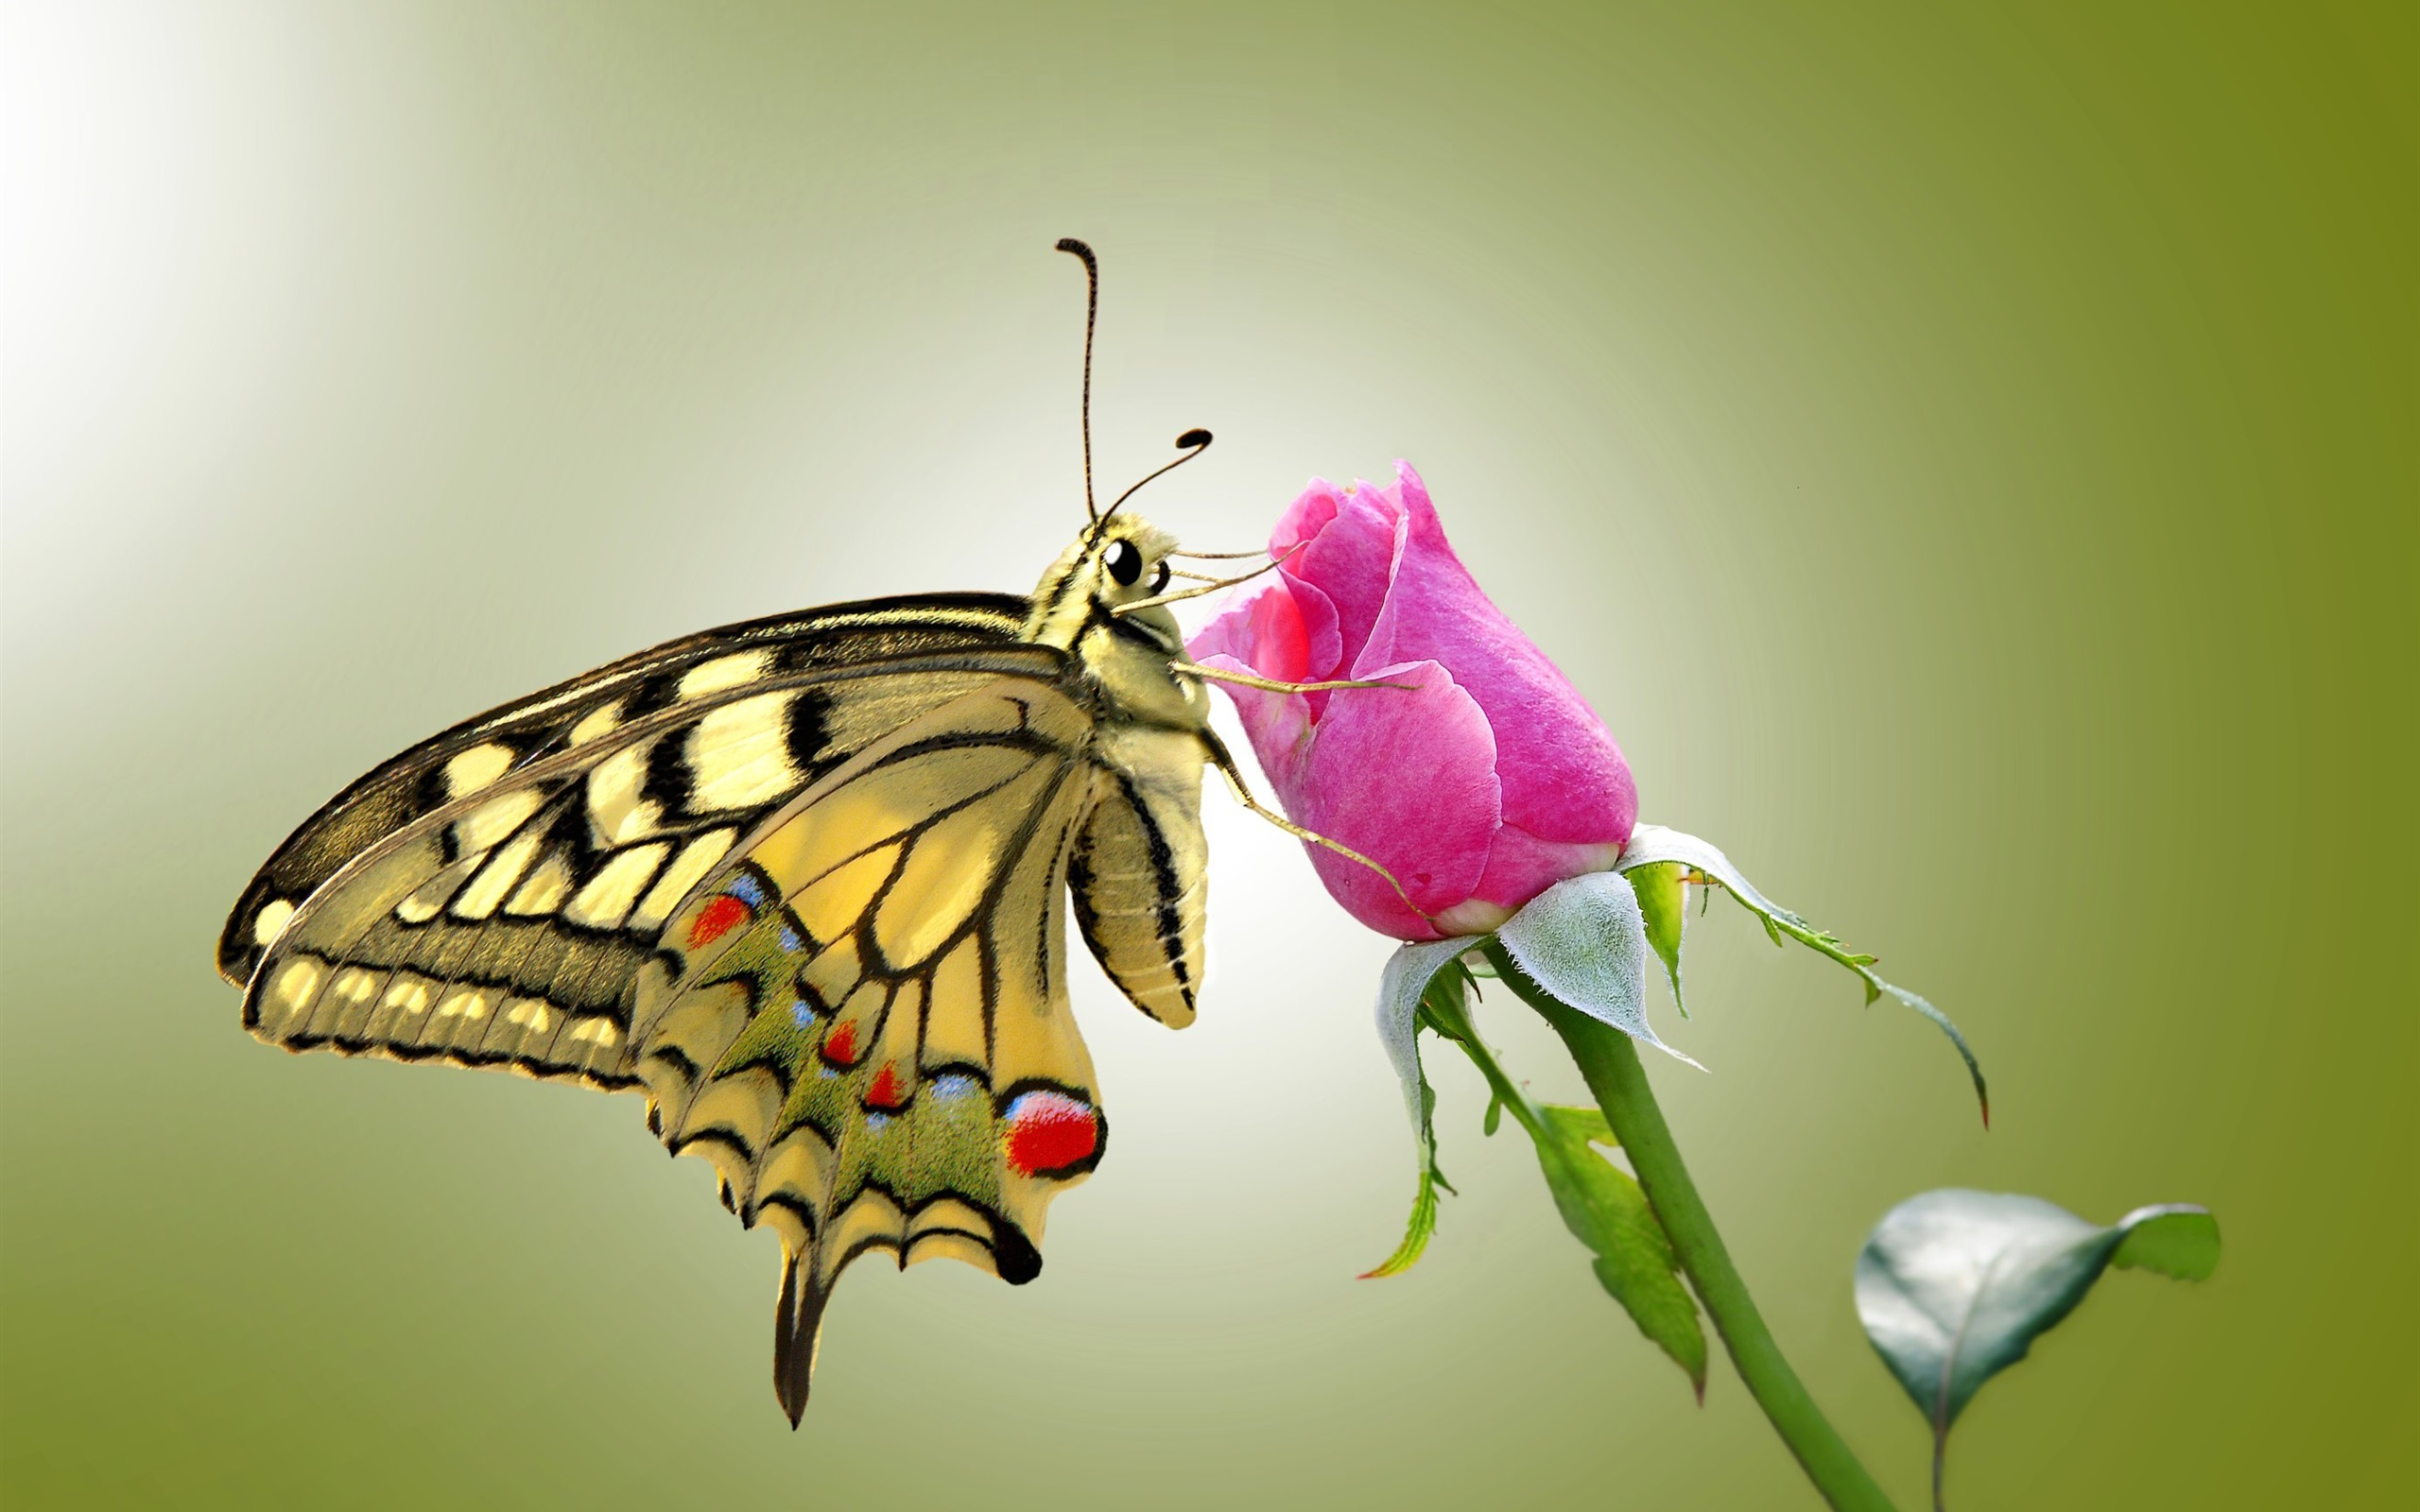 Butterfly and pink rose wallpaper 2560x1600